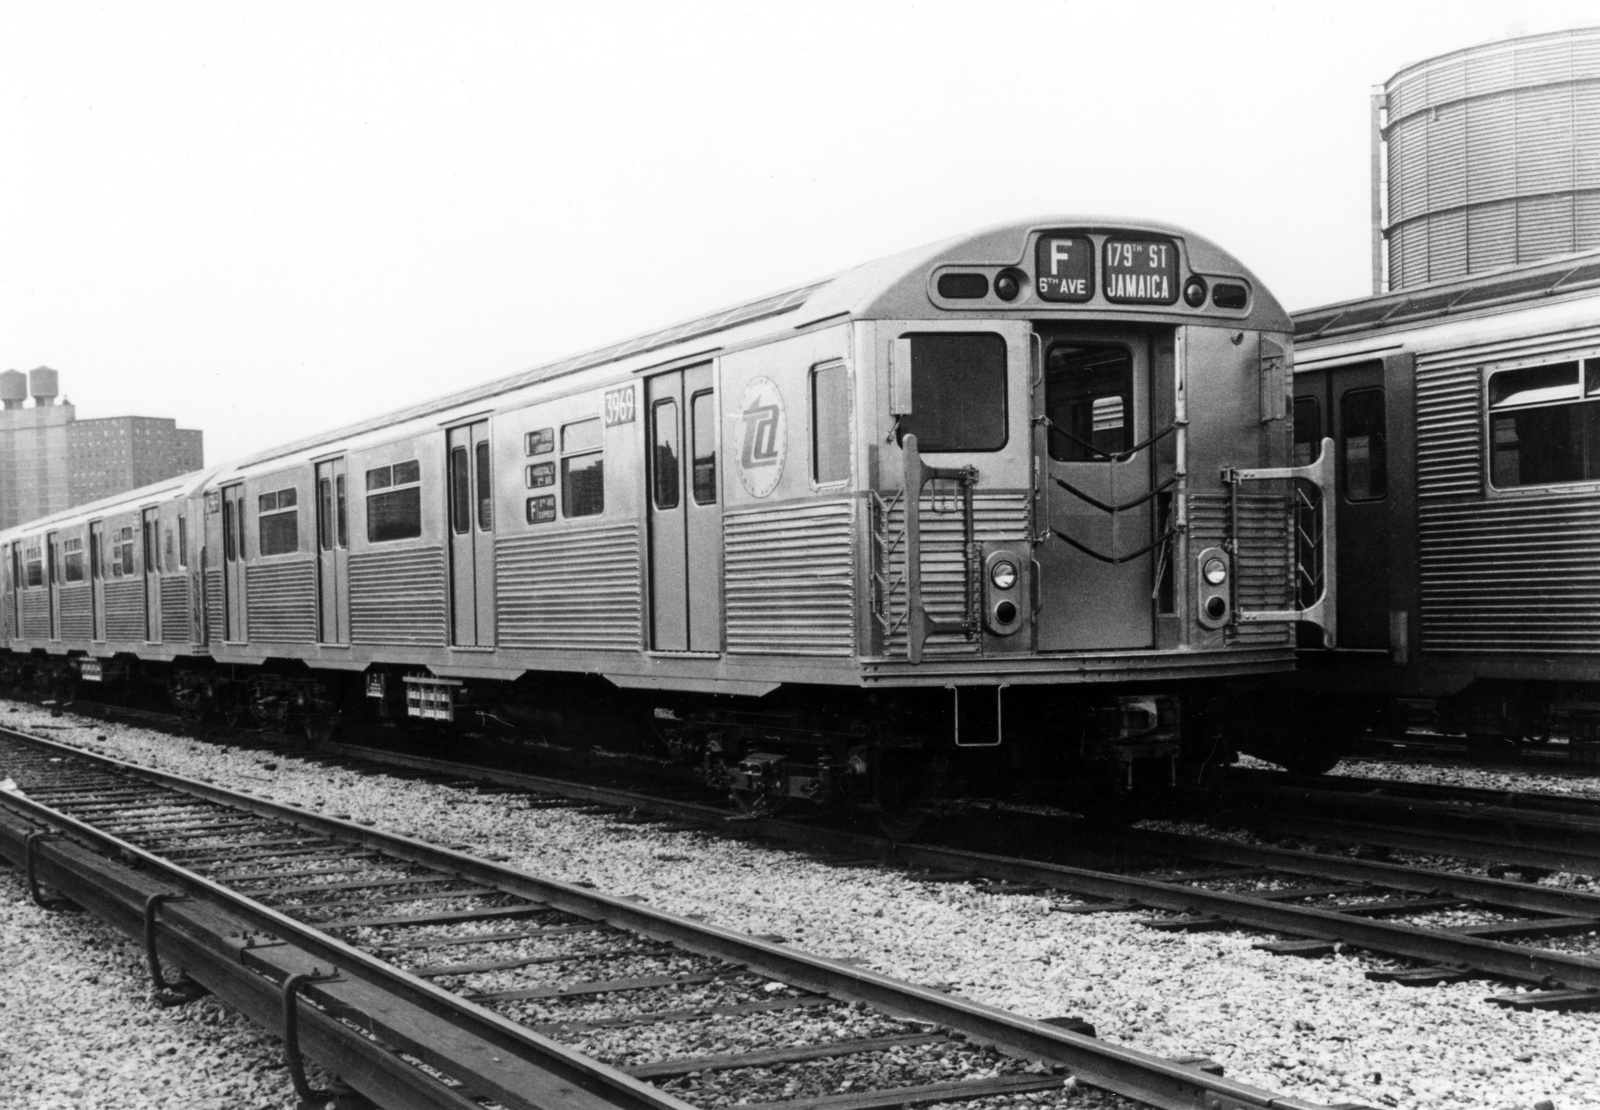 (273k, 1024x812)<br><b>Country:</b> United States<br><b>City:</b> New York<br><b>System:</b> New York City Transit<br><b>Location:</b> Coney Island Yard<br><b>Car:</b> R-38 (St. Louis, 1966-1967)  3969 <br><b>Photo by:</b> Ed Watson/Arthur Lonto Collection<br><b>Collection of:</b> Frank Pfuhler<br><b>Date:</b> 1966<br><b>Viewed (this week/total):</b> 2 / 385